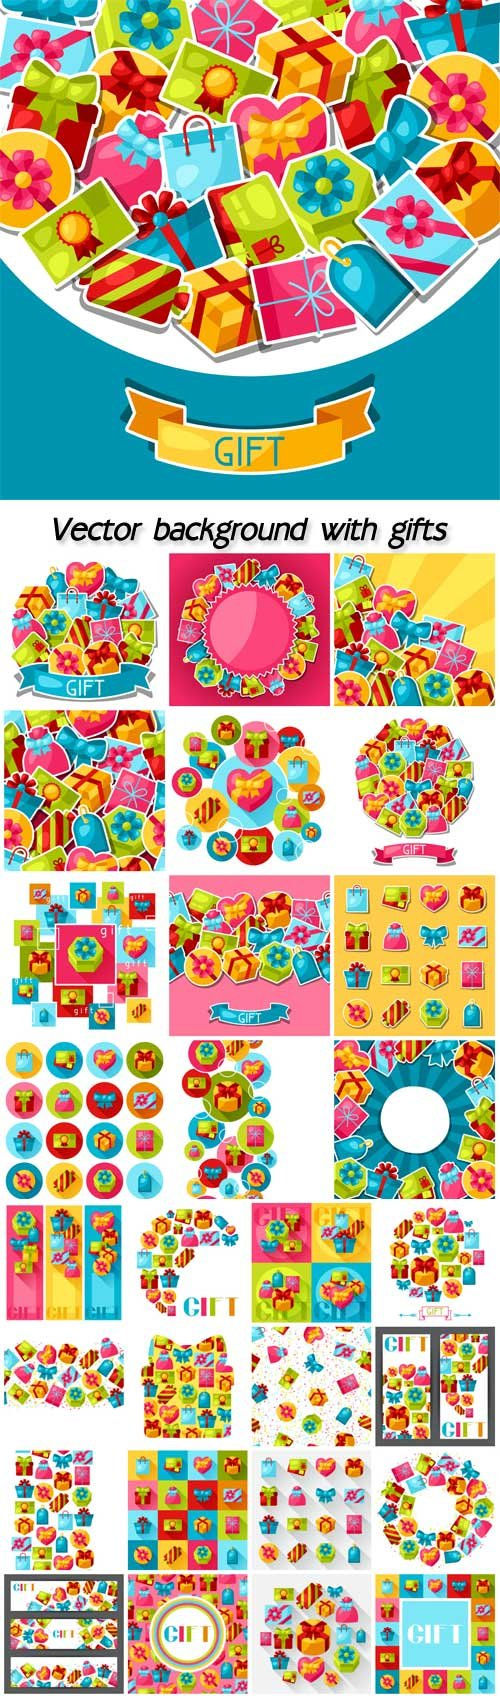 Vector background with gifts